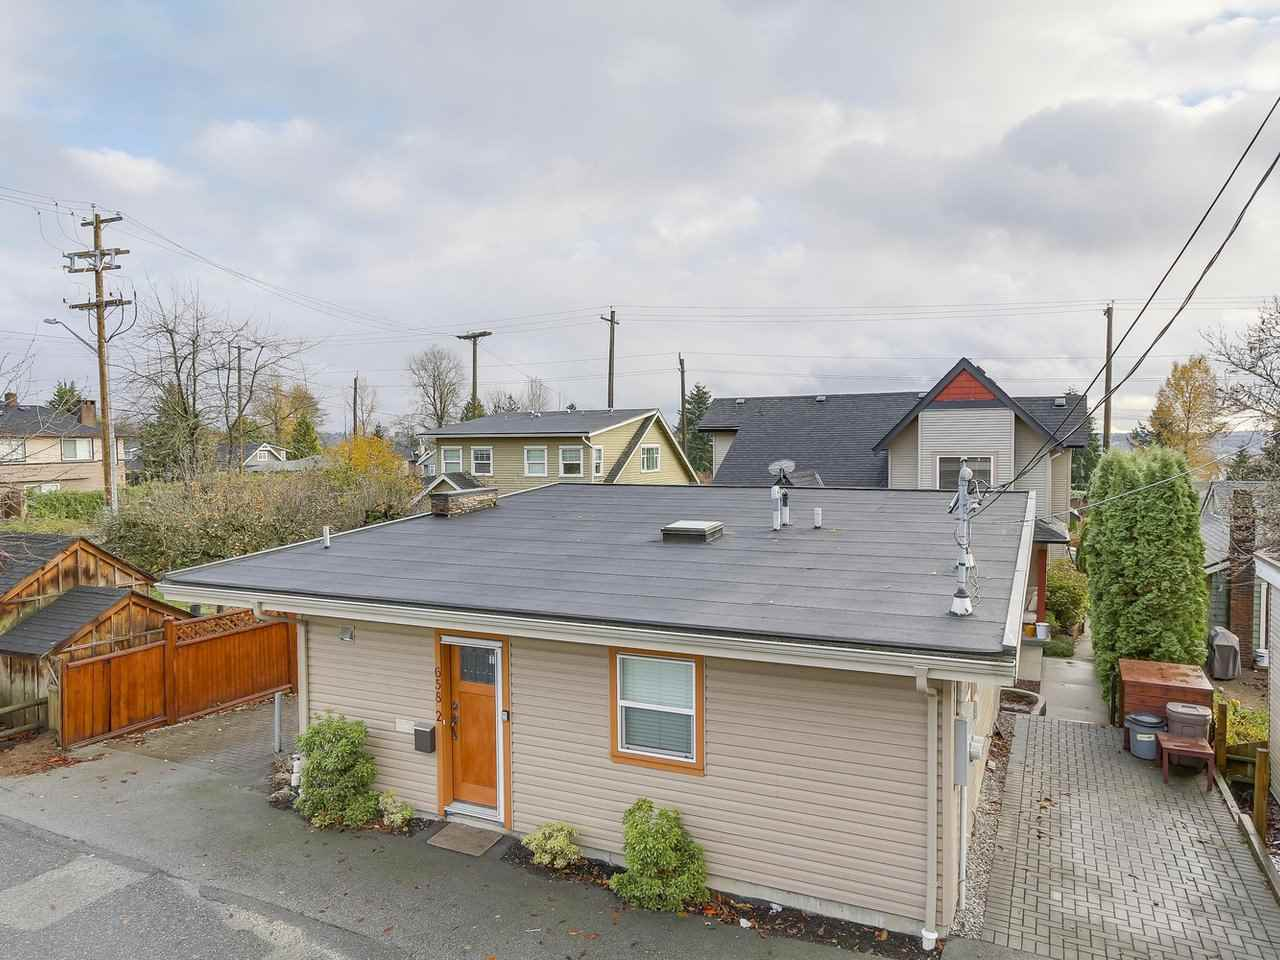 Photo 19: Photos: 658 E 4TH STREET in North Vancouver: Queensbury House for sale : MLS® # R2222993